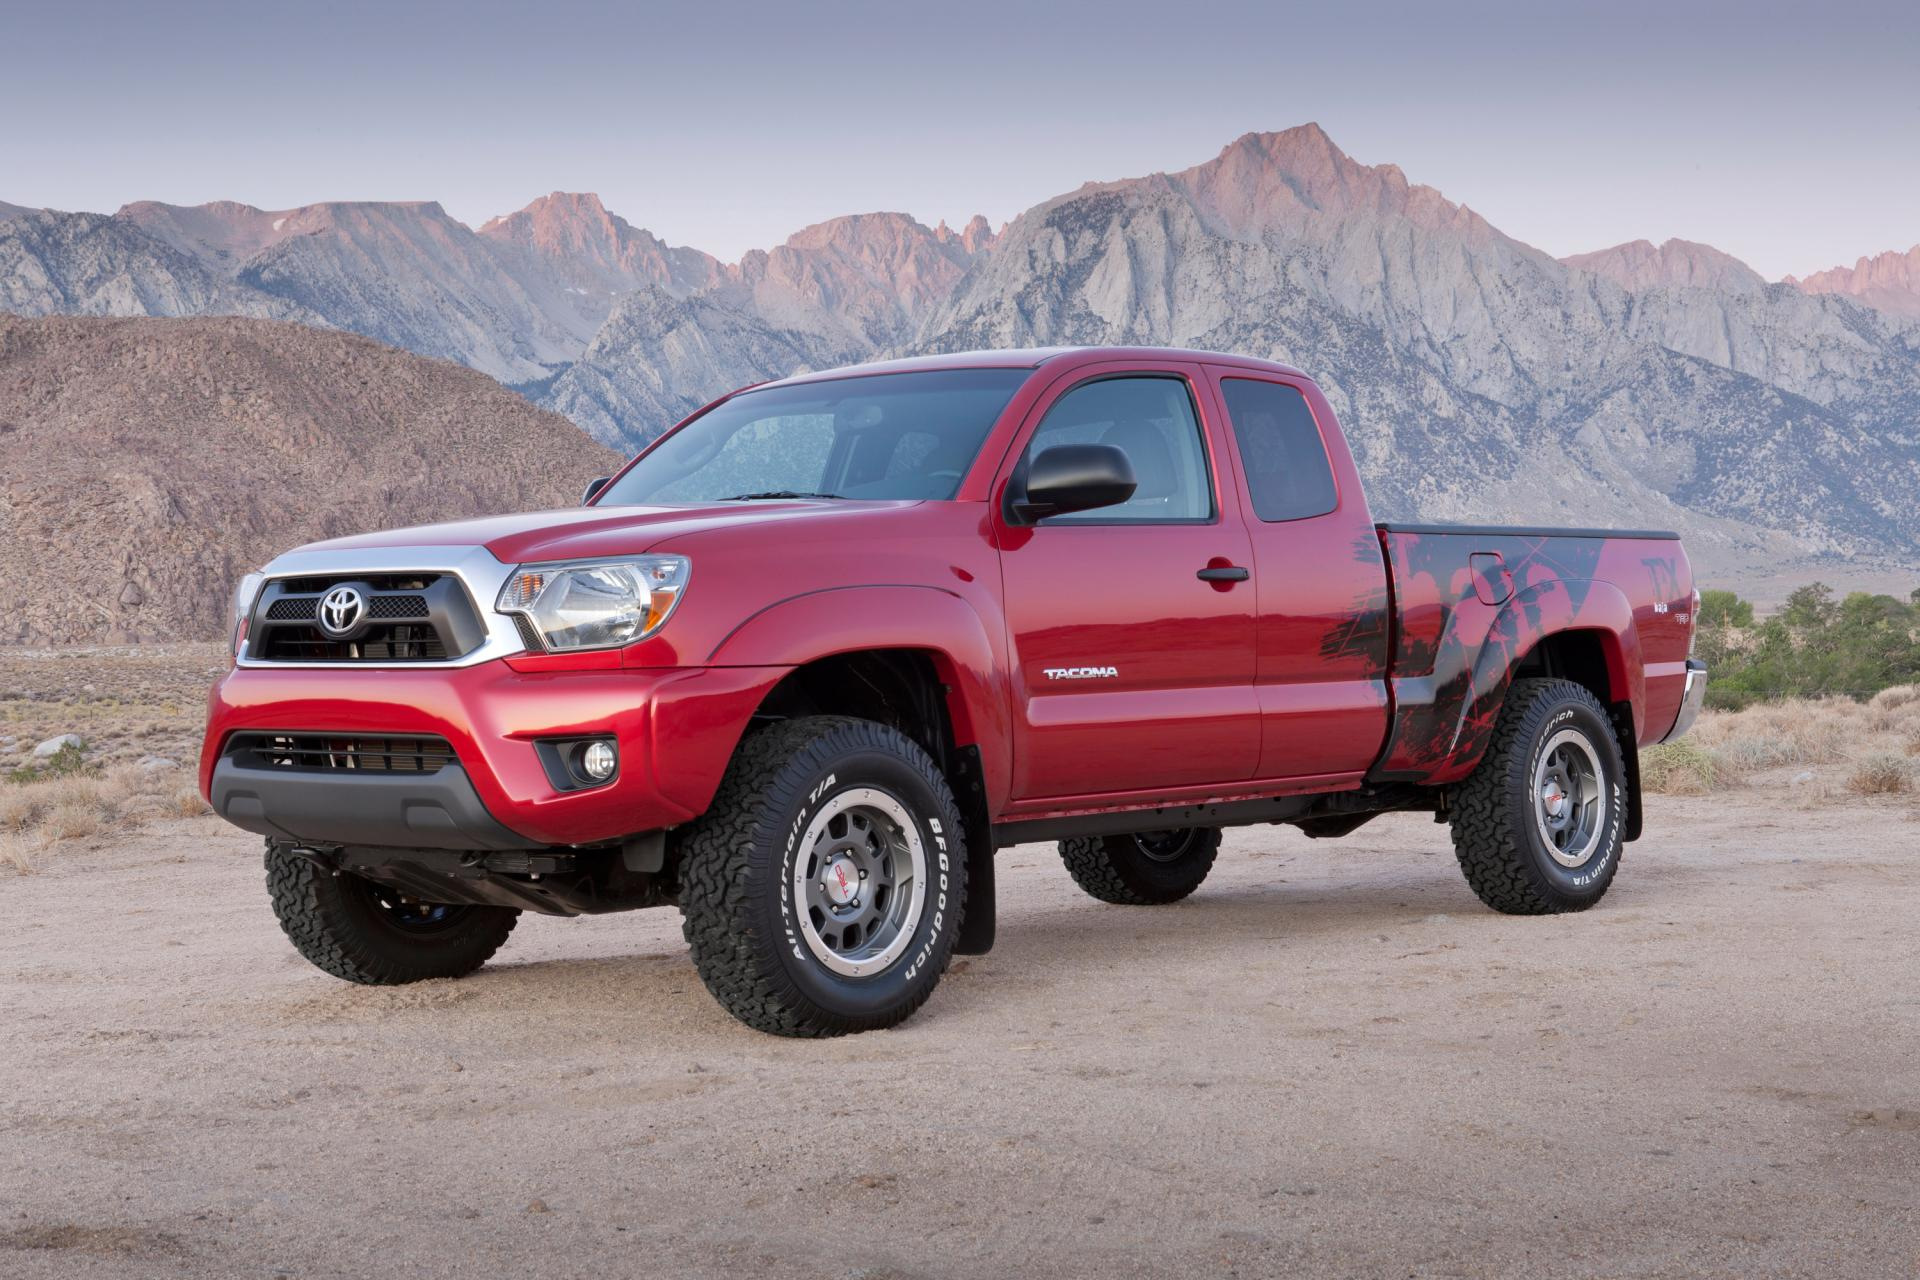 2012 toyota tacoma trd t x baja series limited edition news and information. Black Bedroom Furniture Sets. Home Design Ideas